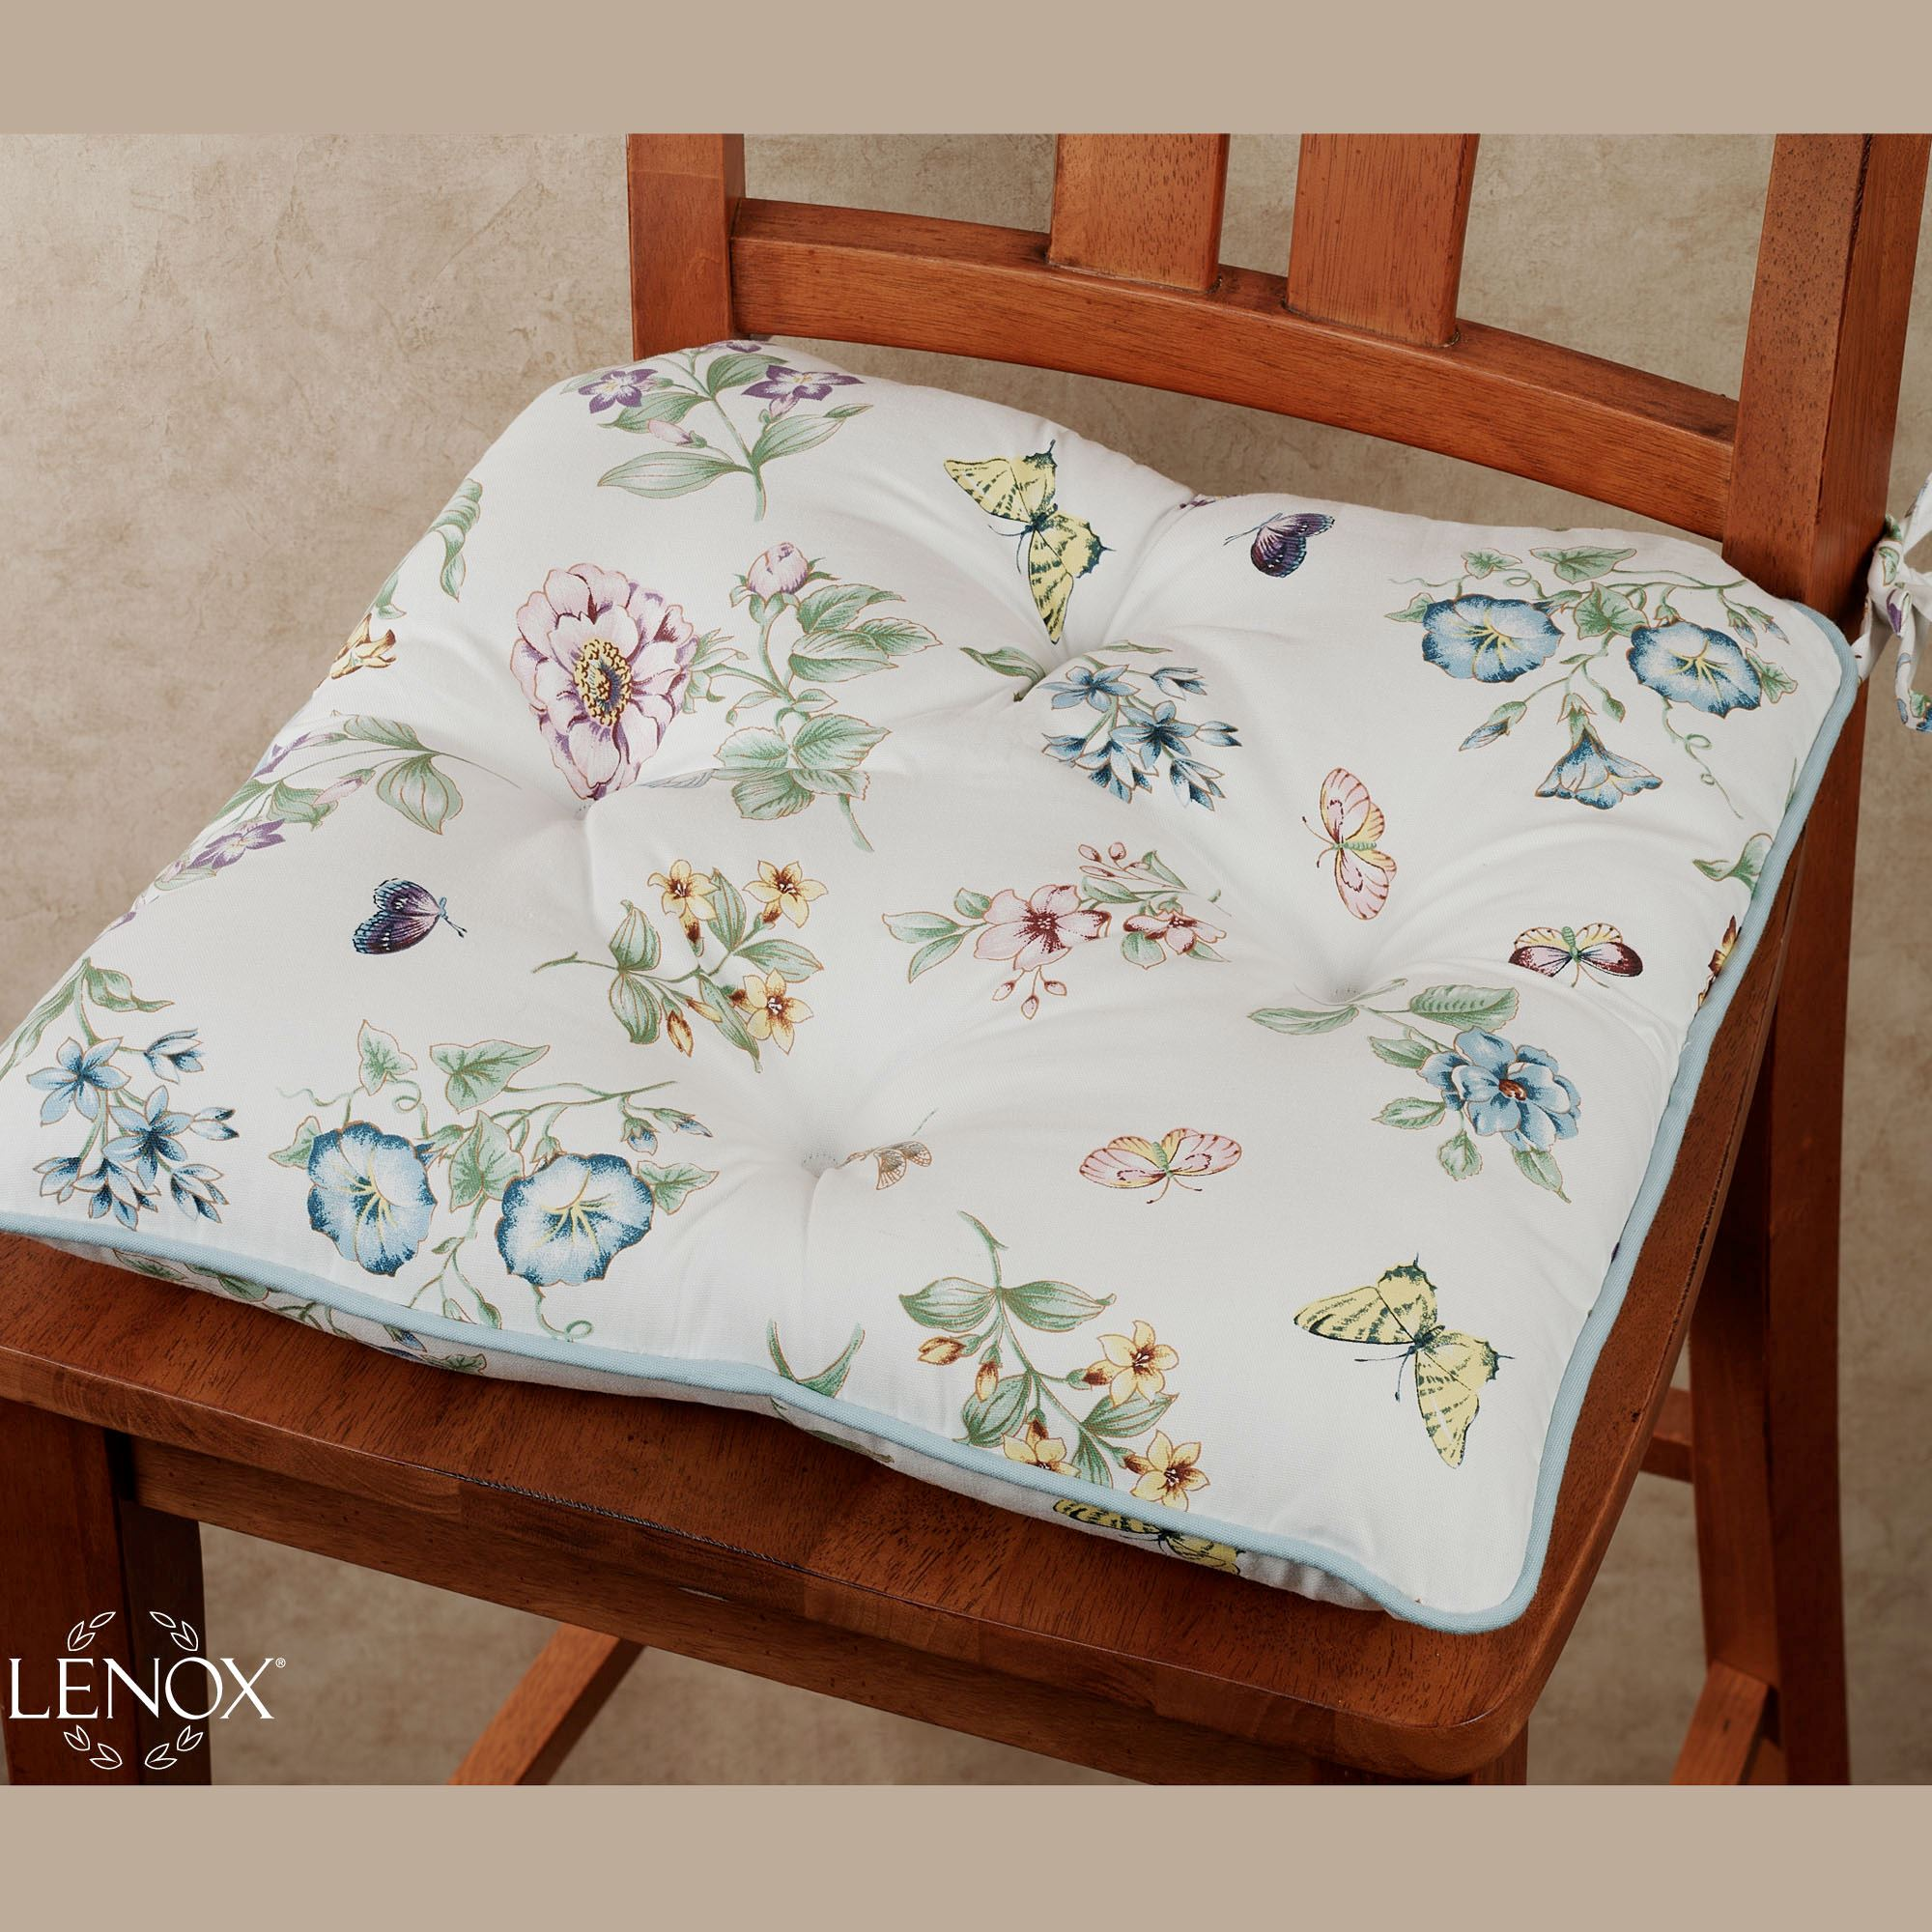 chair cushions with ties french country glider patio chairs lenox butterfly meadow cushion or placemat set